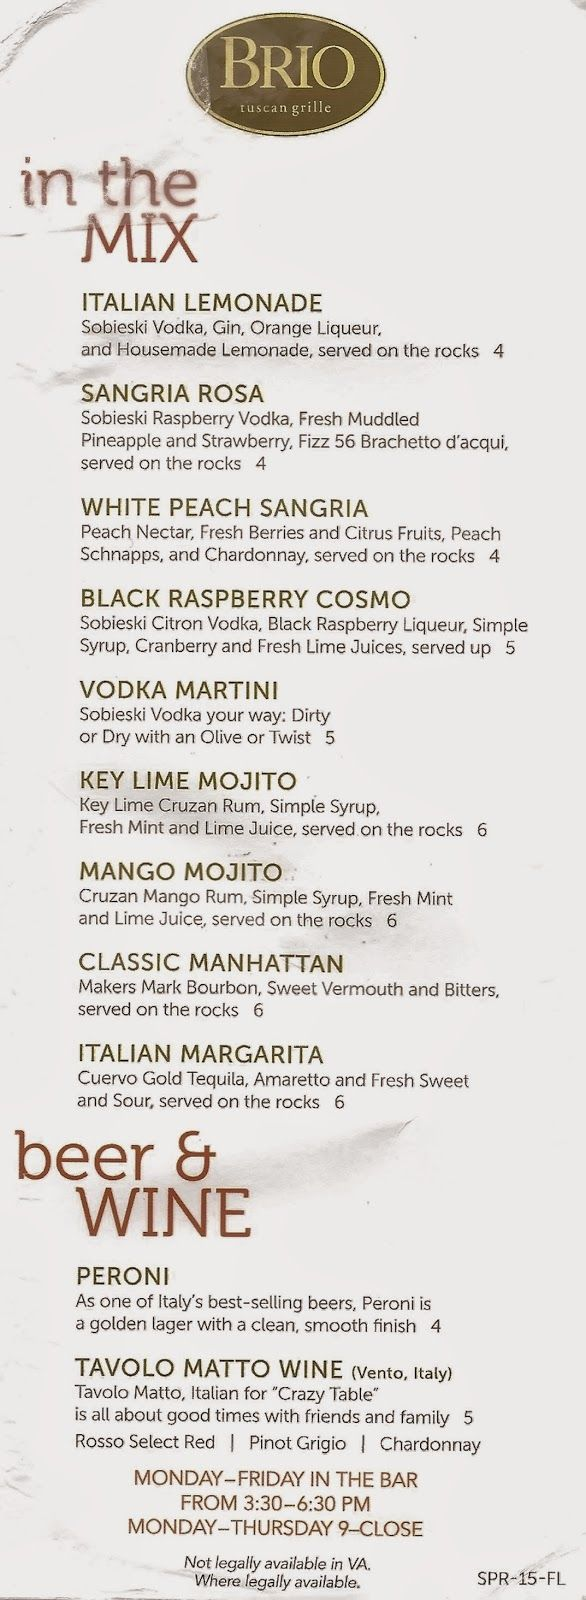 Brio Tivoli Village Happy Hour Menu Southwest Florida Forks Happy Hour At Brio Tuscan Grille Drinks